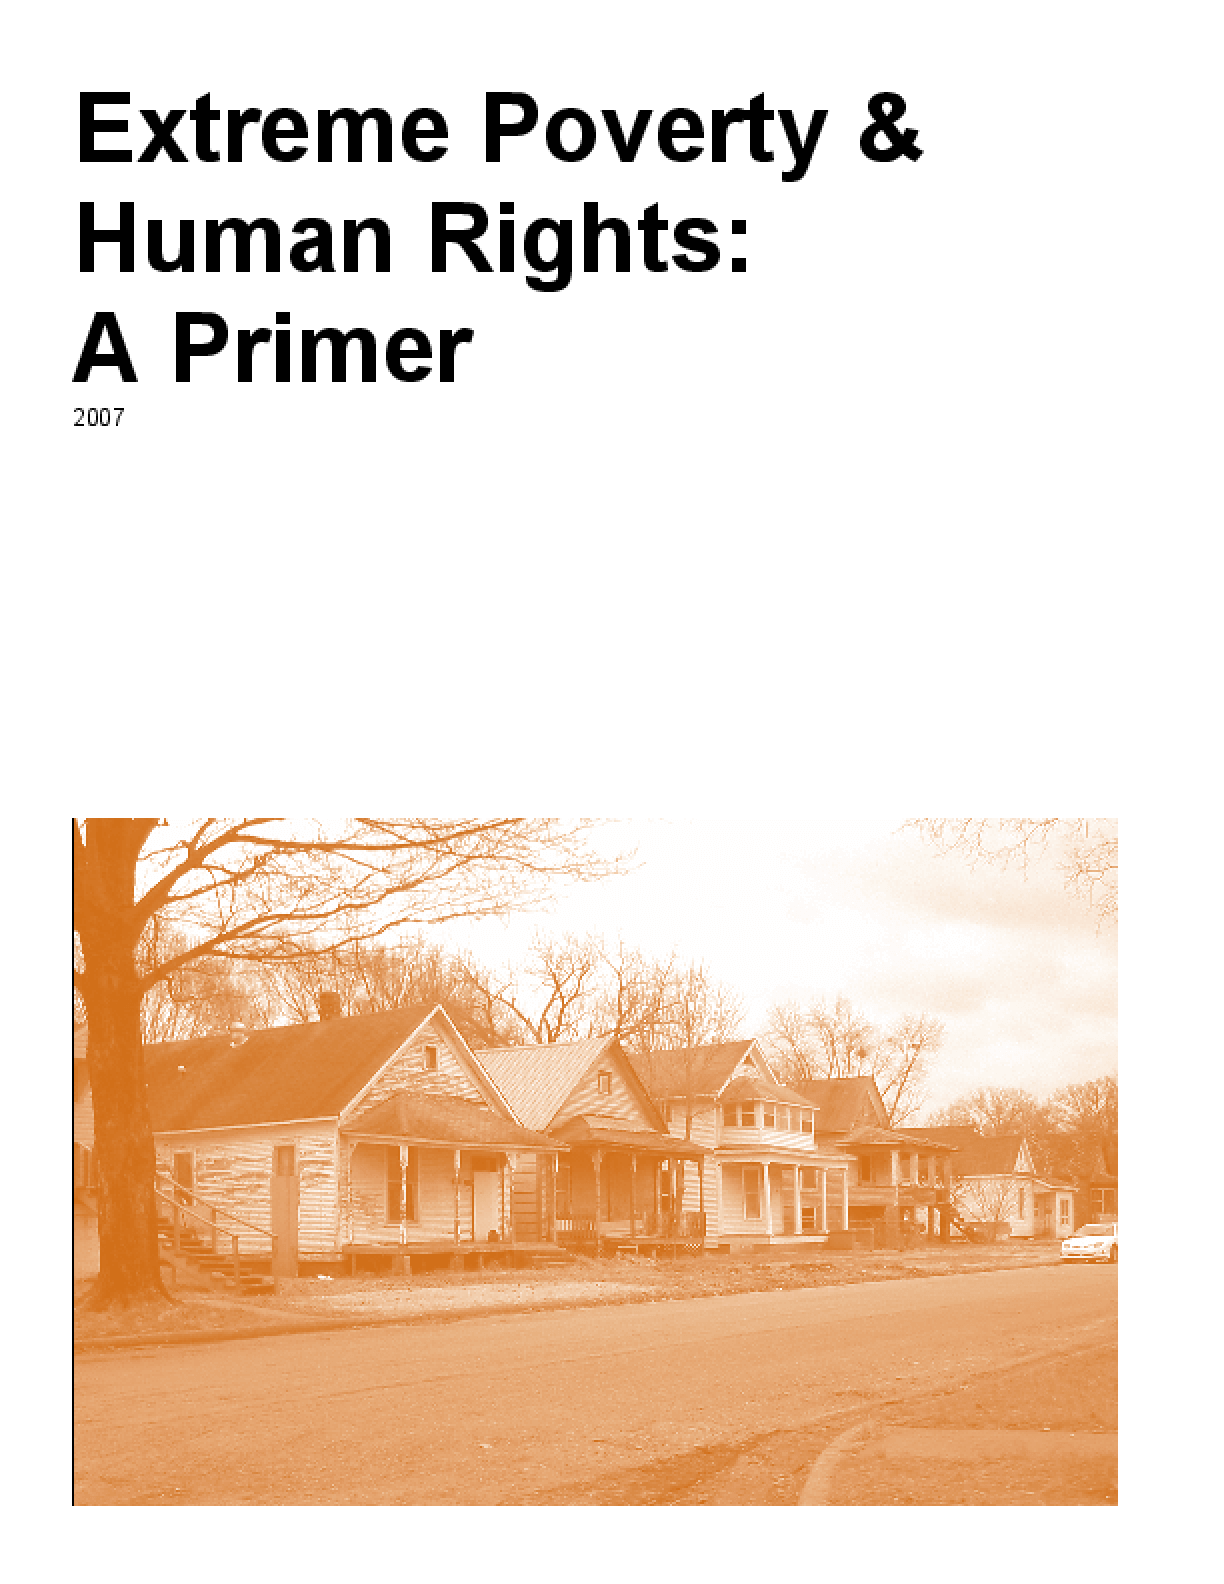 Extreme Poverty and Human Rights: A Primer